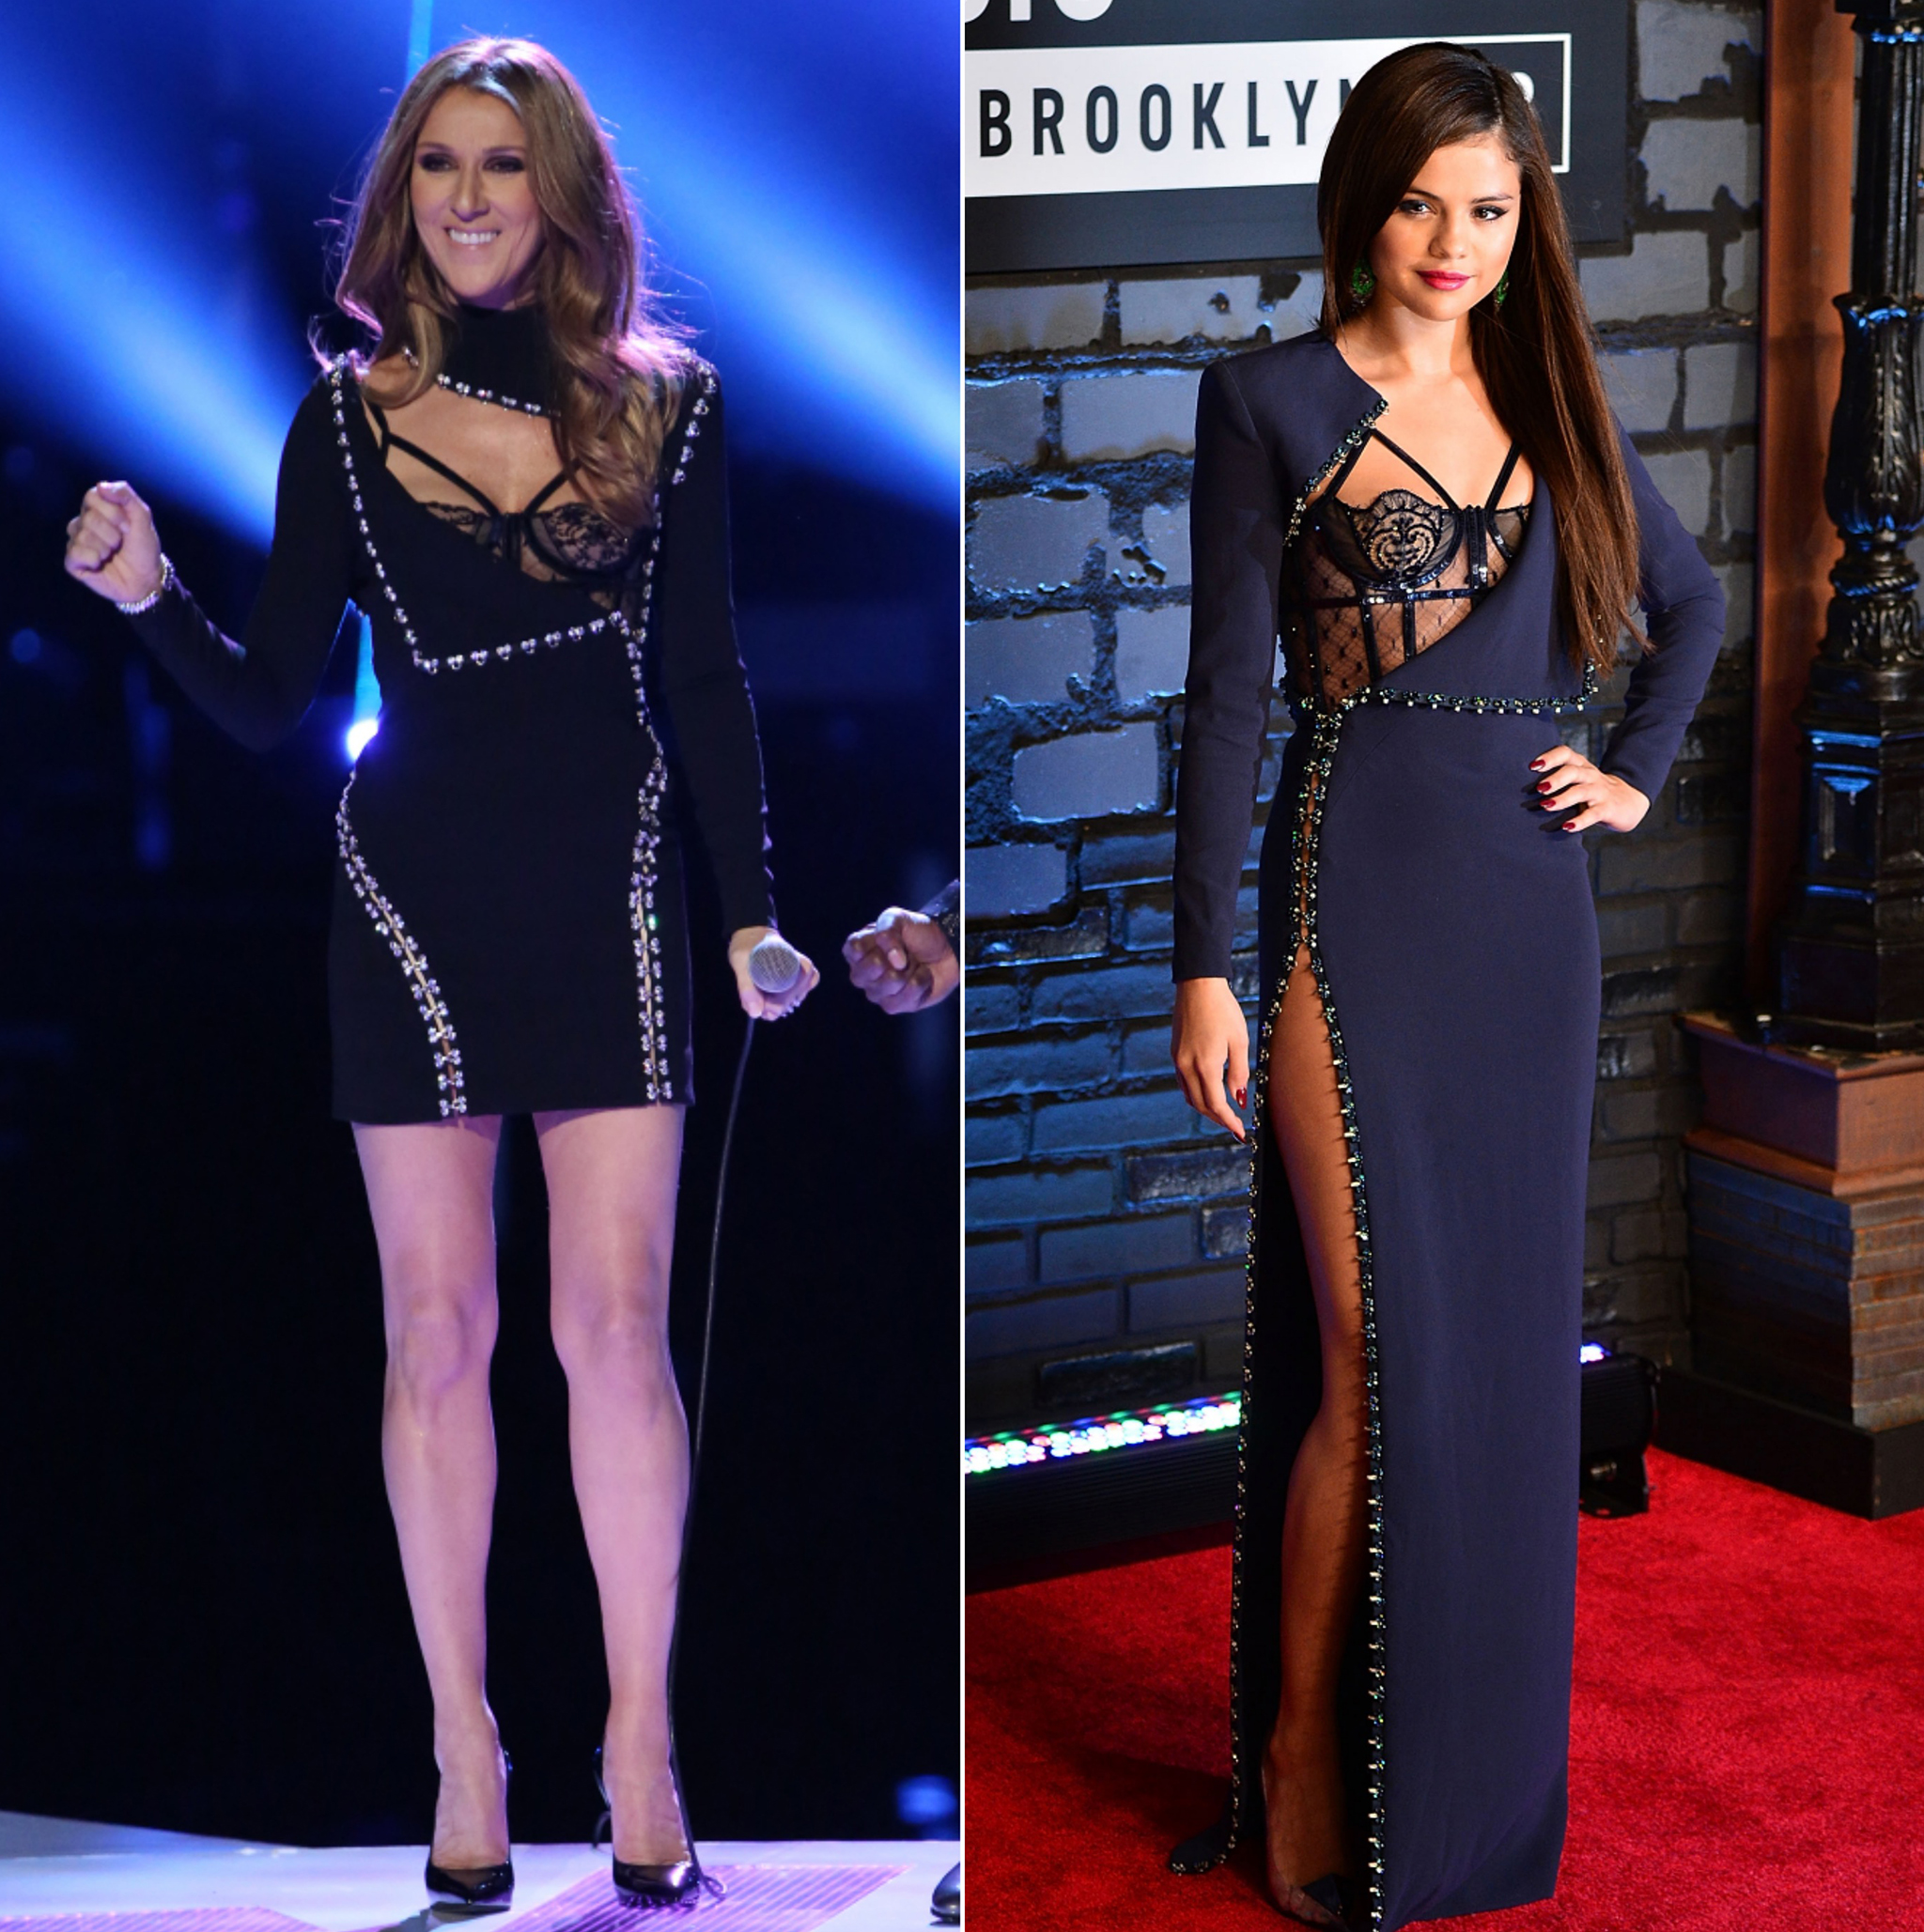 Celine Dion vs. Selena Gomez (Getty)